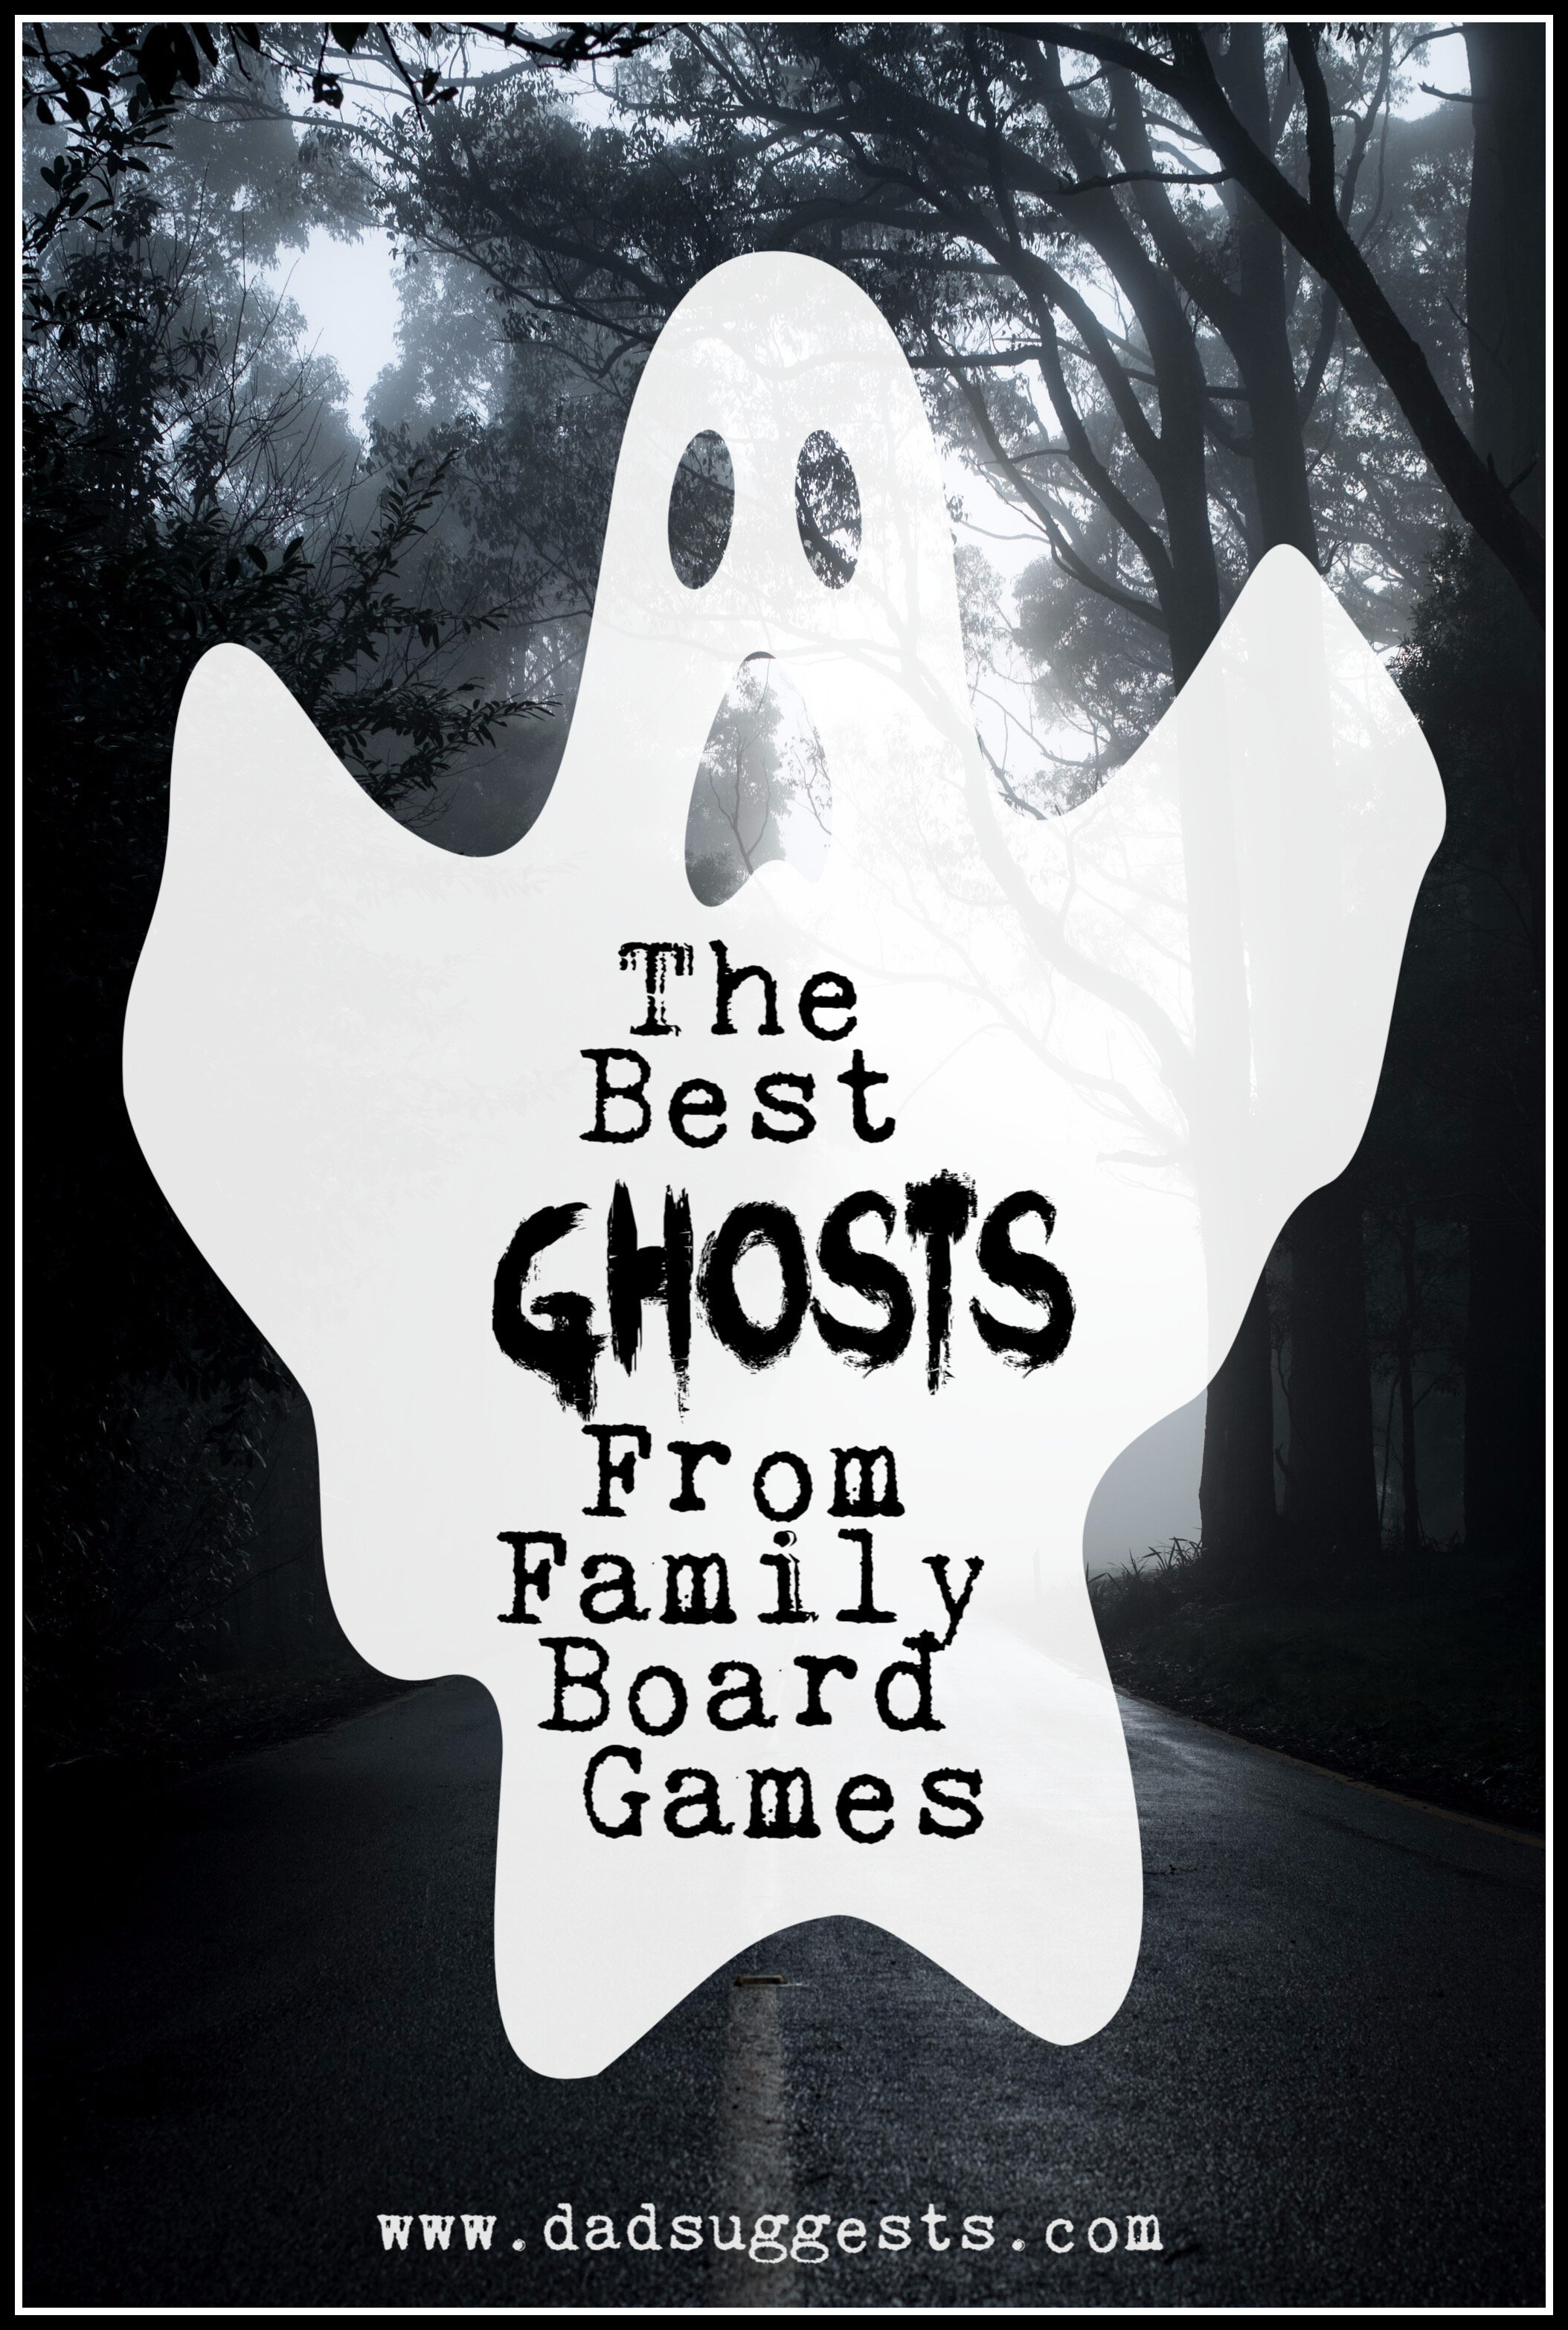 These are the best ghosts from family board games. Do you like playing spooky-themed board games around Halloween? Make sure to check out these family games with ghosts and haunted houses. #halloweengames #spookygames #familyhalloween #familygamenight #kidsgames #boardgames #familyboardgames #dadsuggests